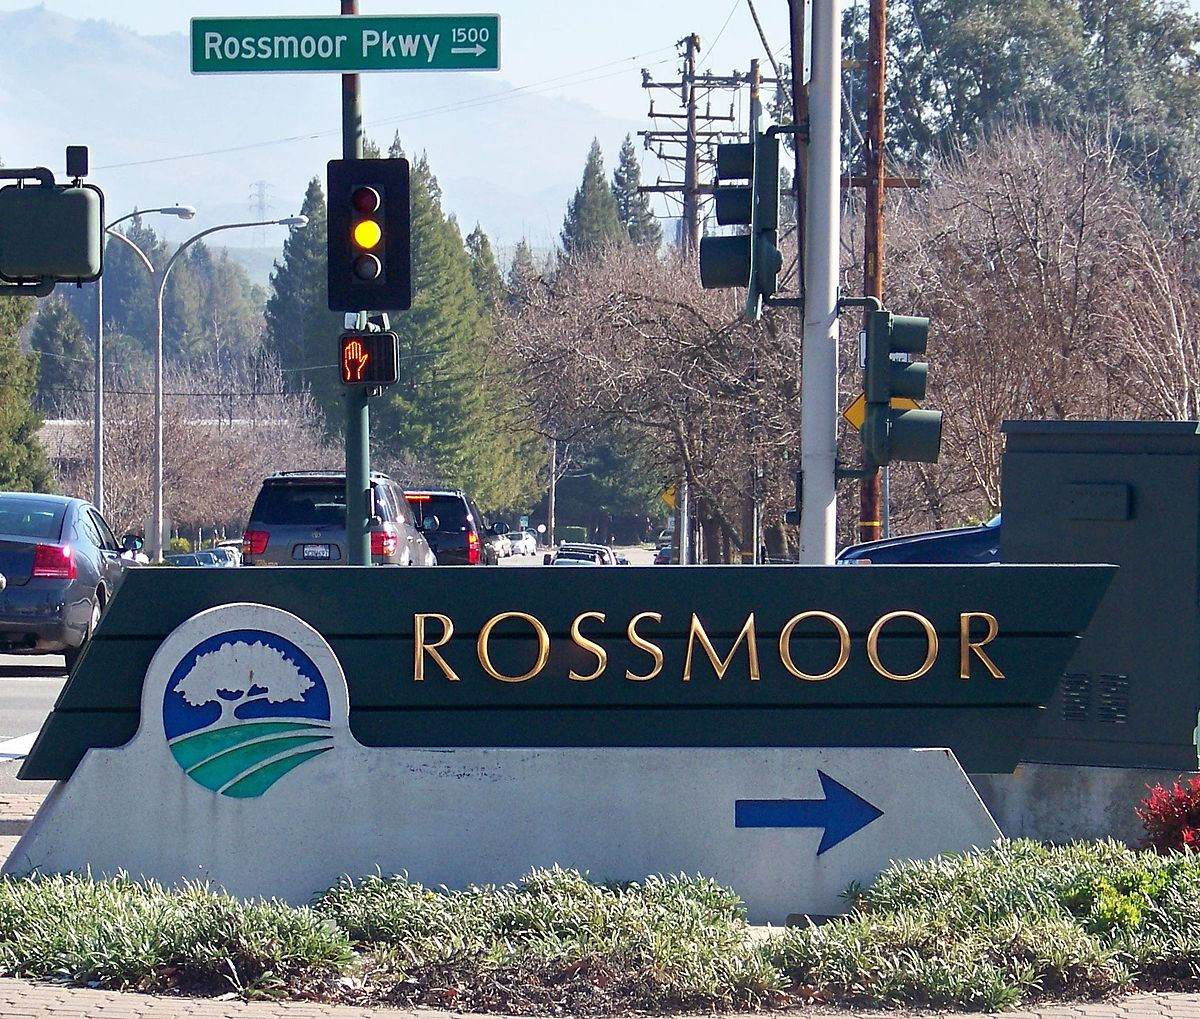 Rossmoor, Walnut Creek, California